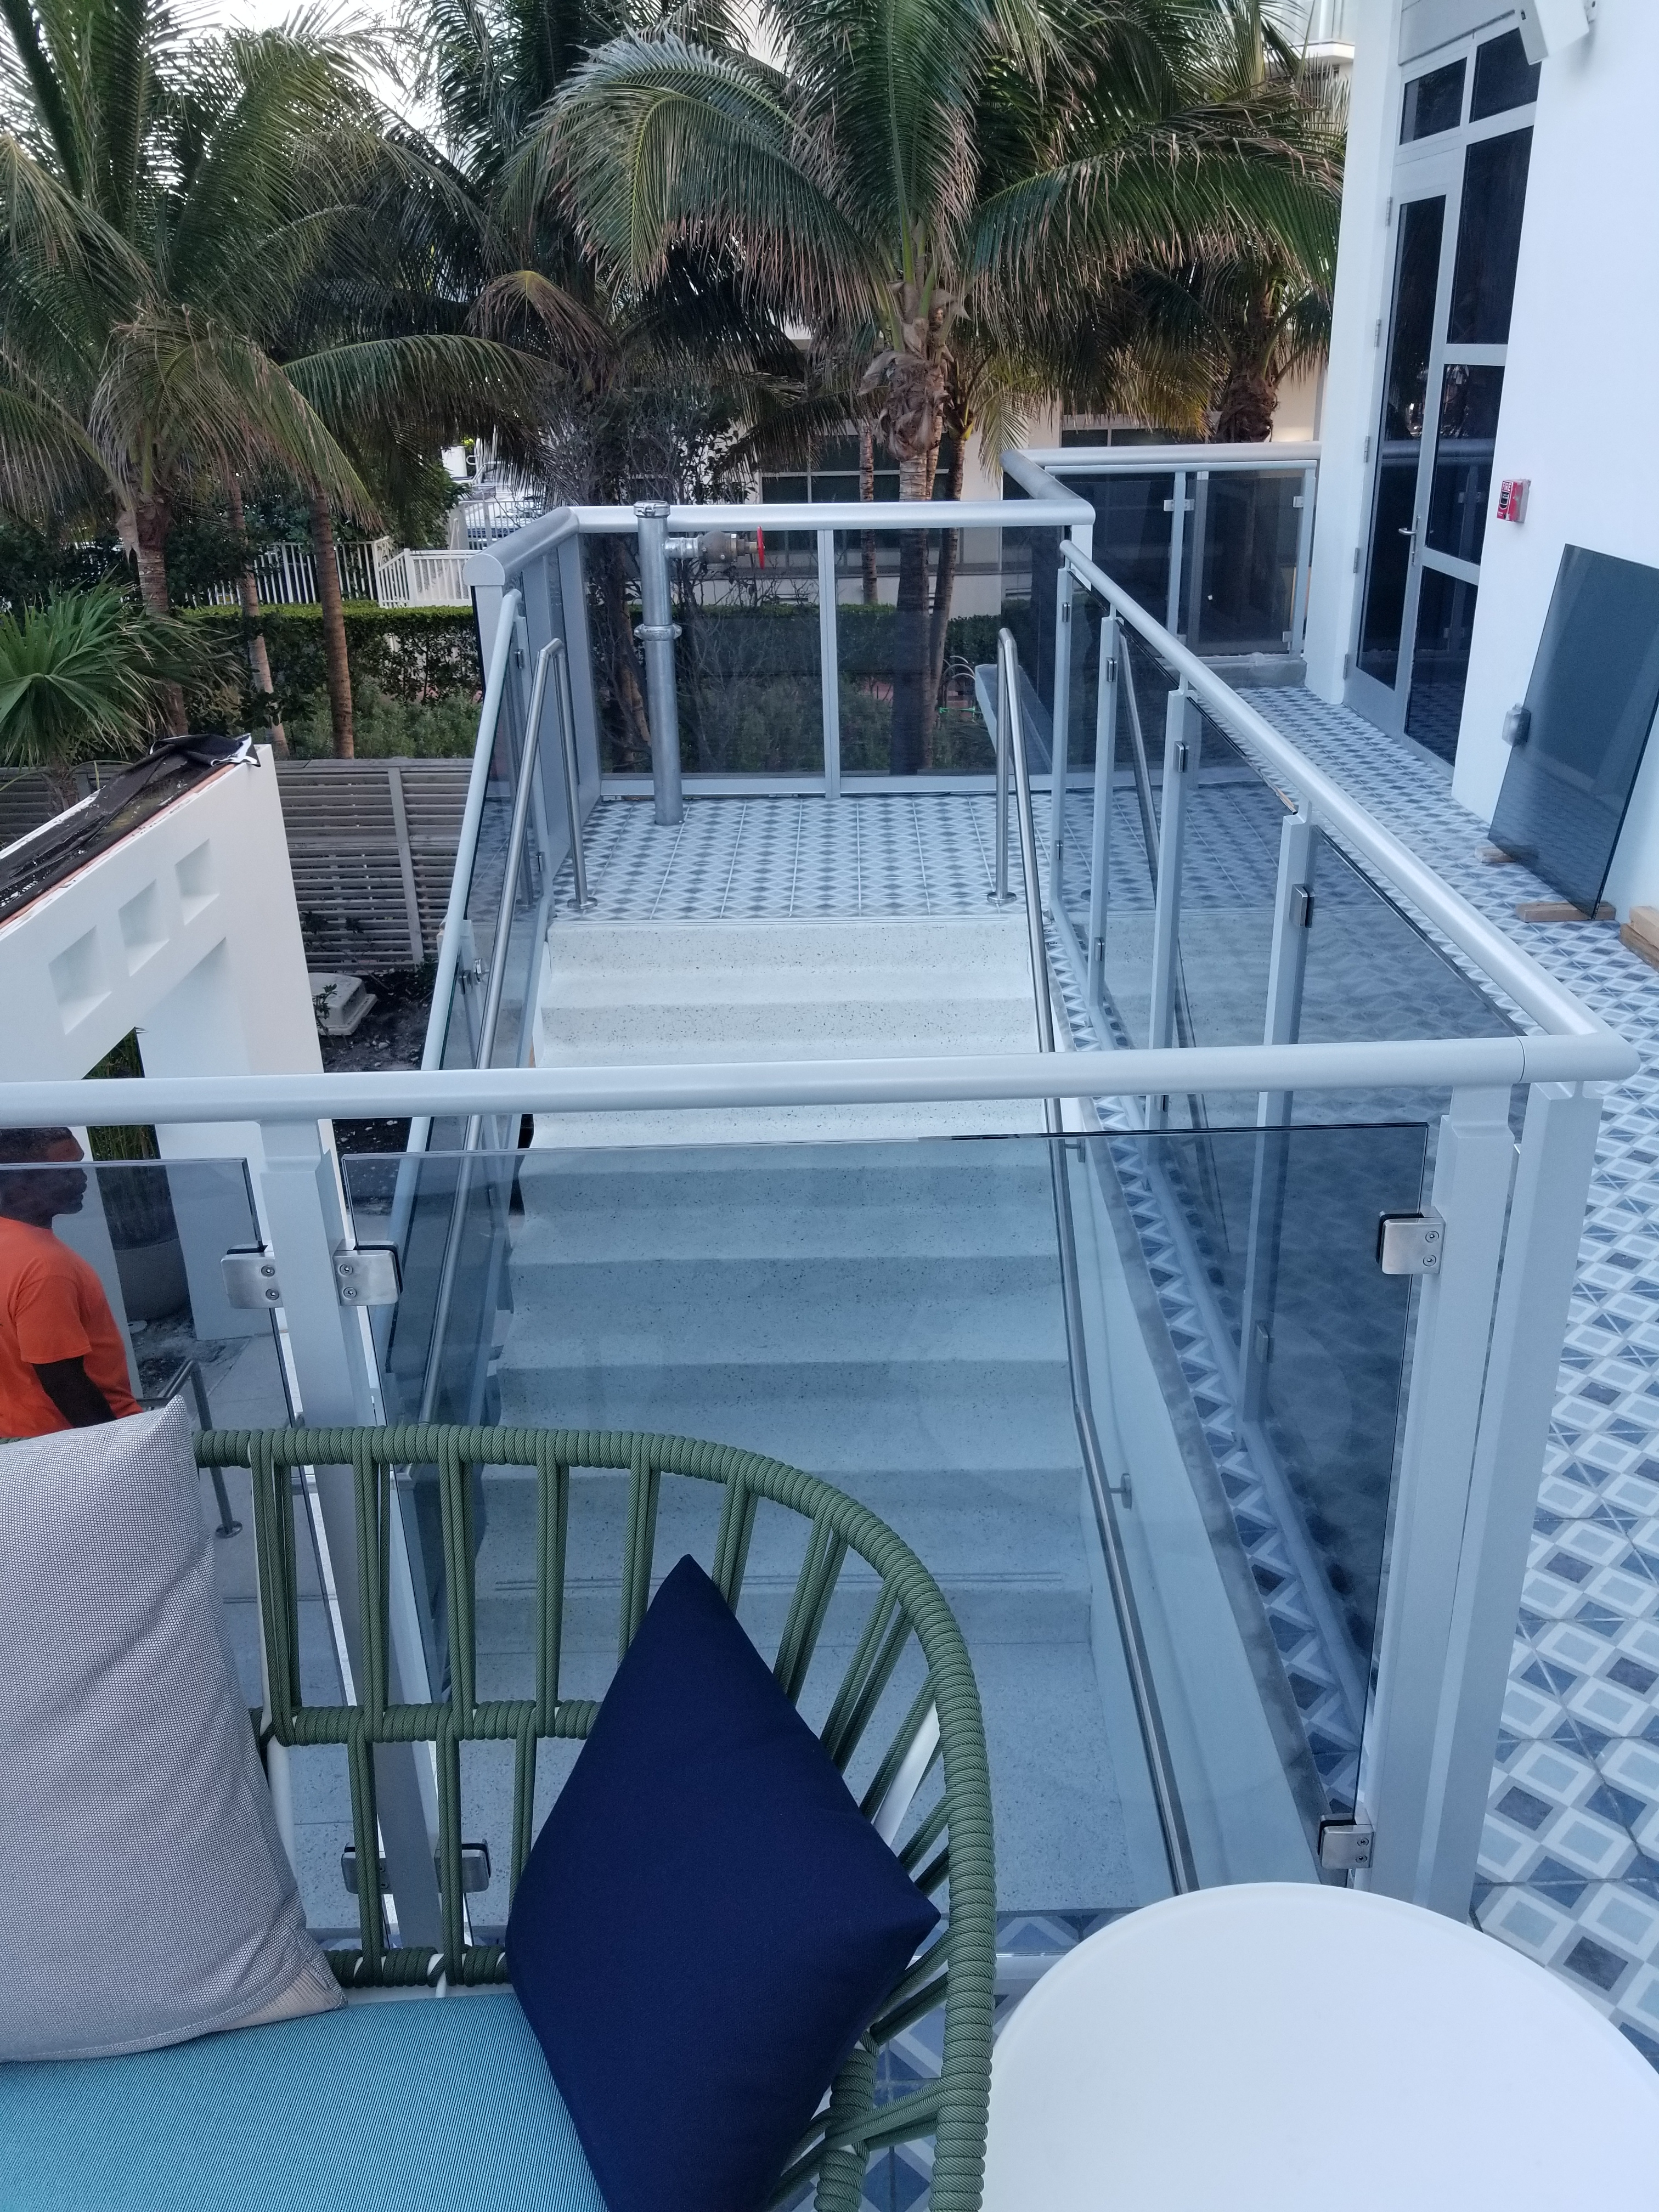 Glass railings with metal handles